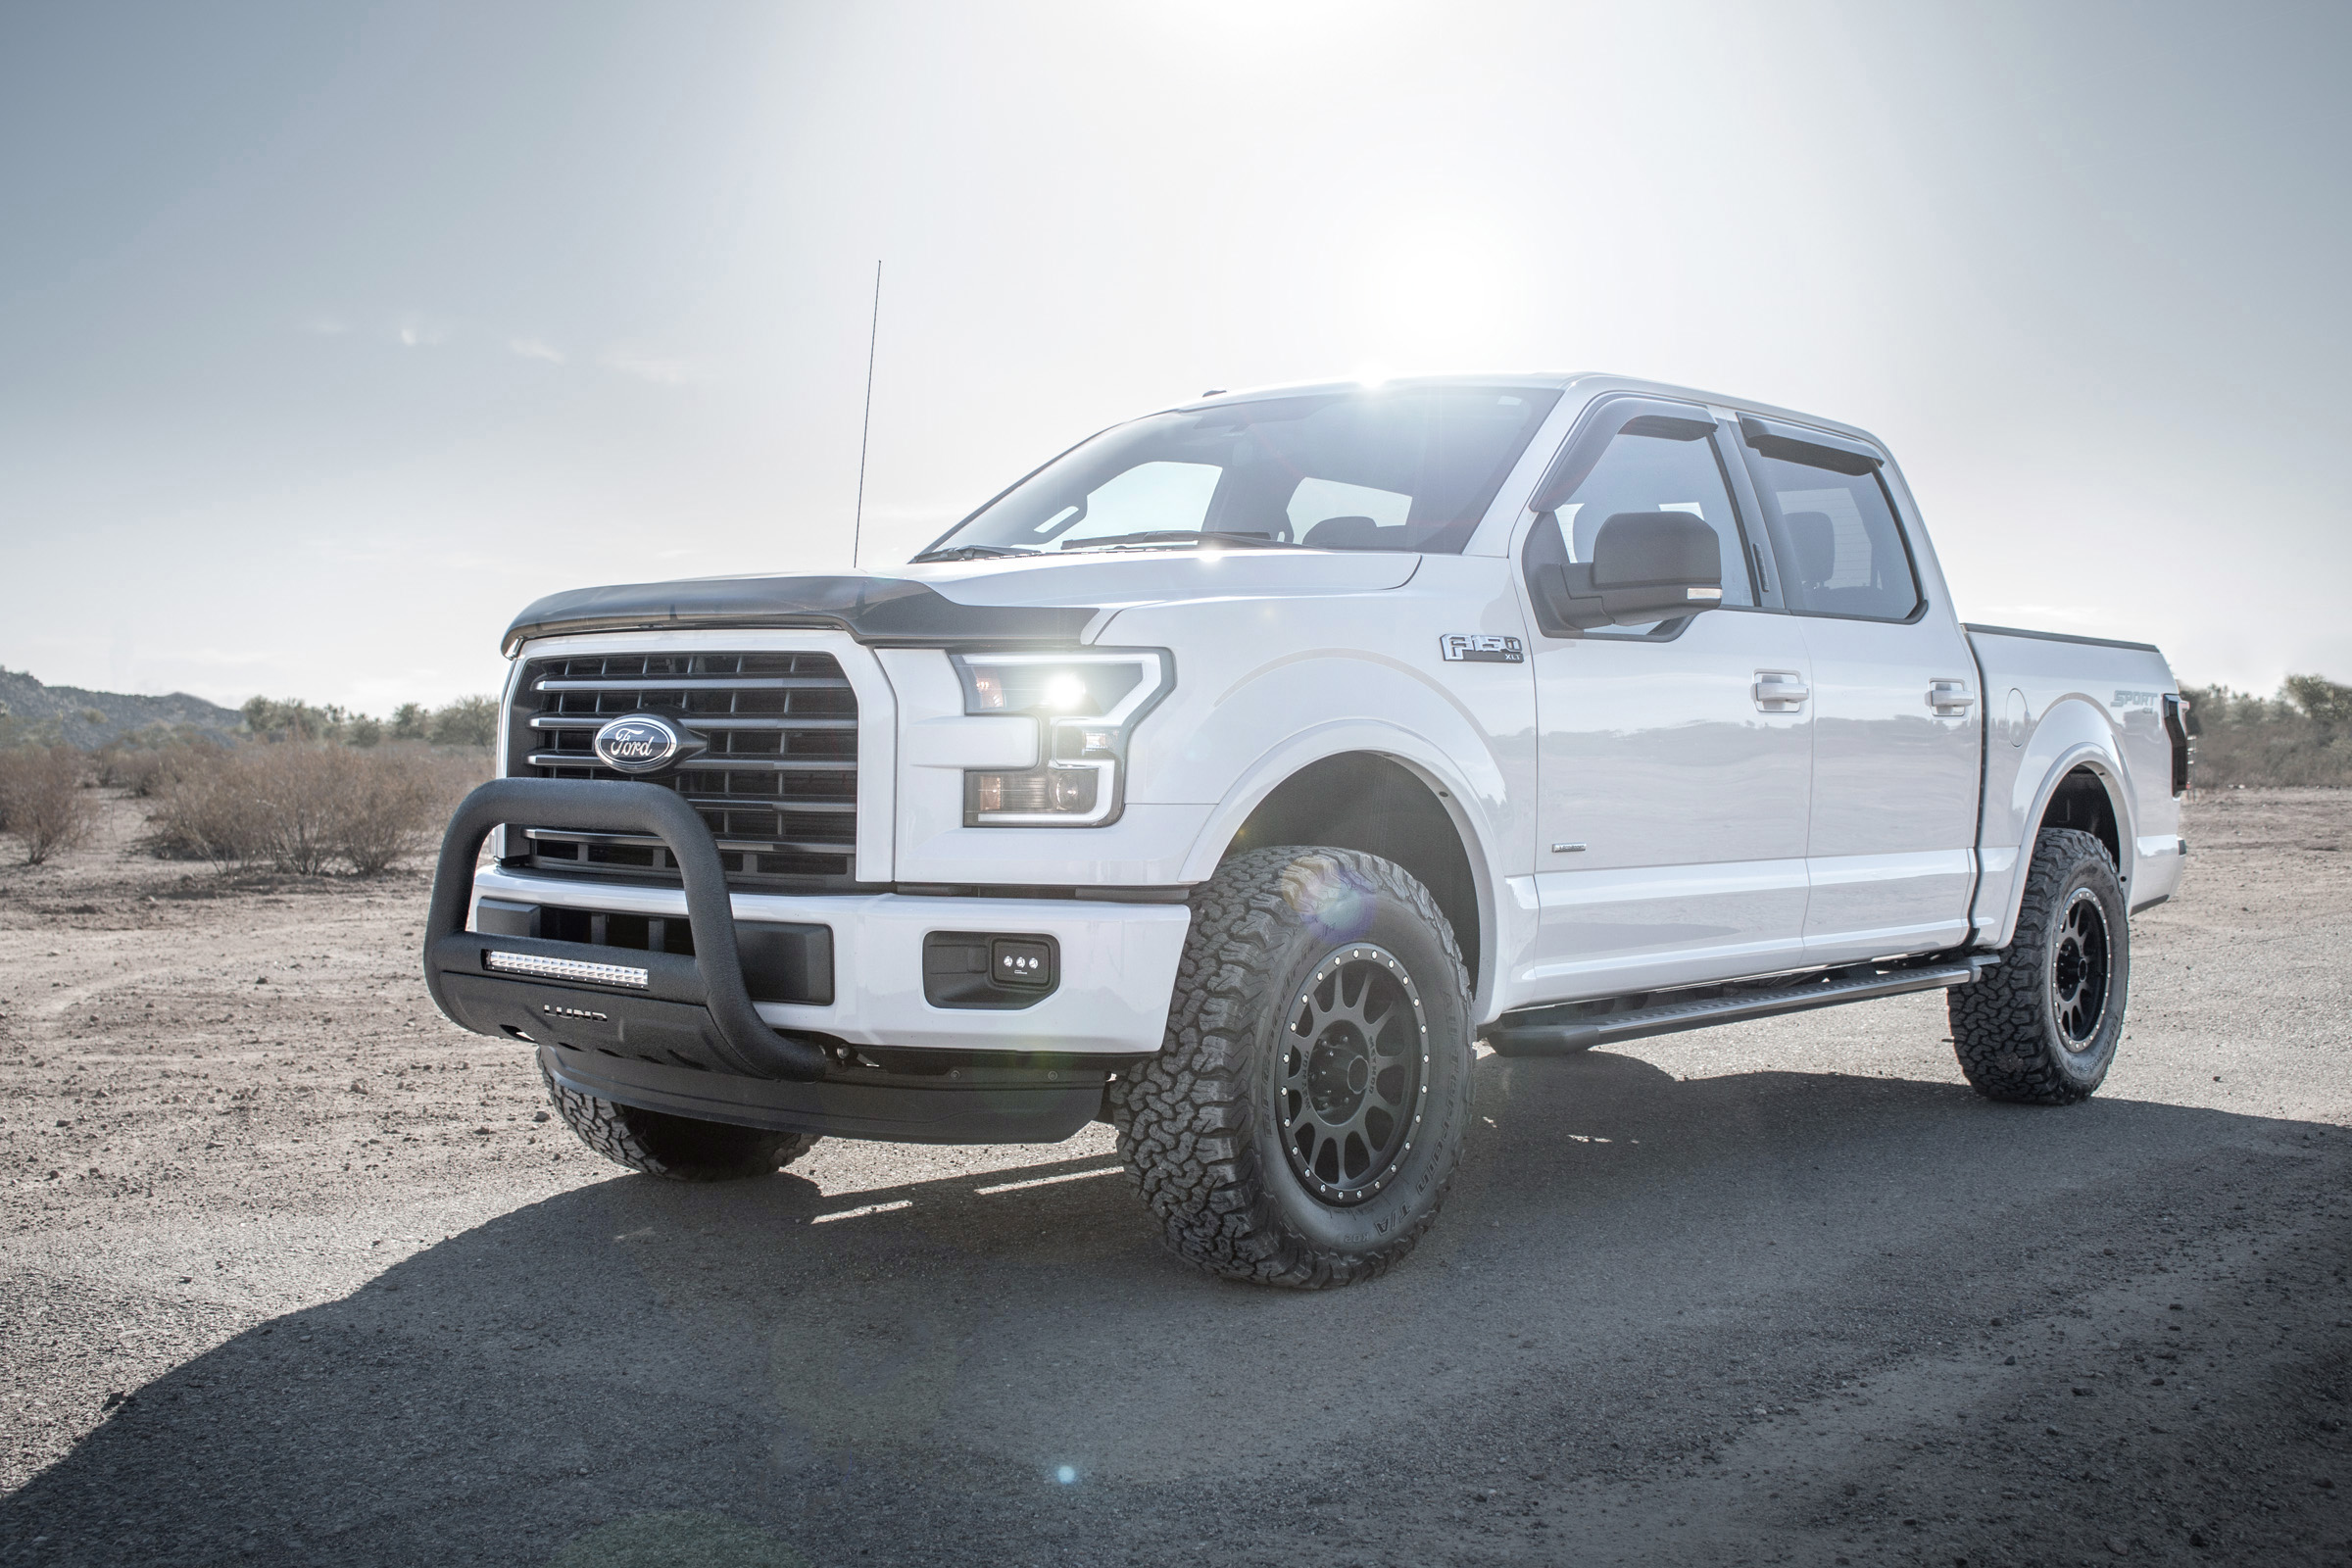 Stage 3 s 2015 F150 3 5L EcoBoost XLT Project s Leveling Wheels